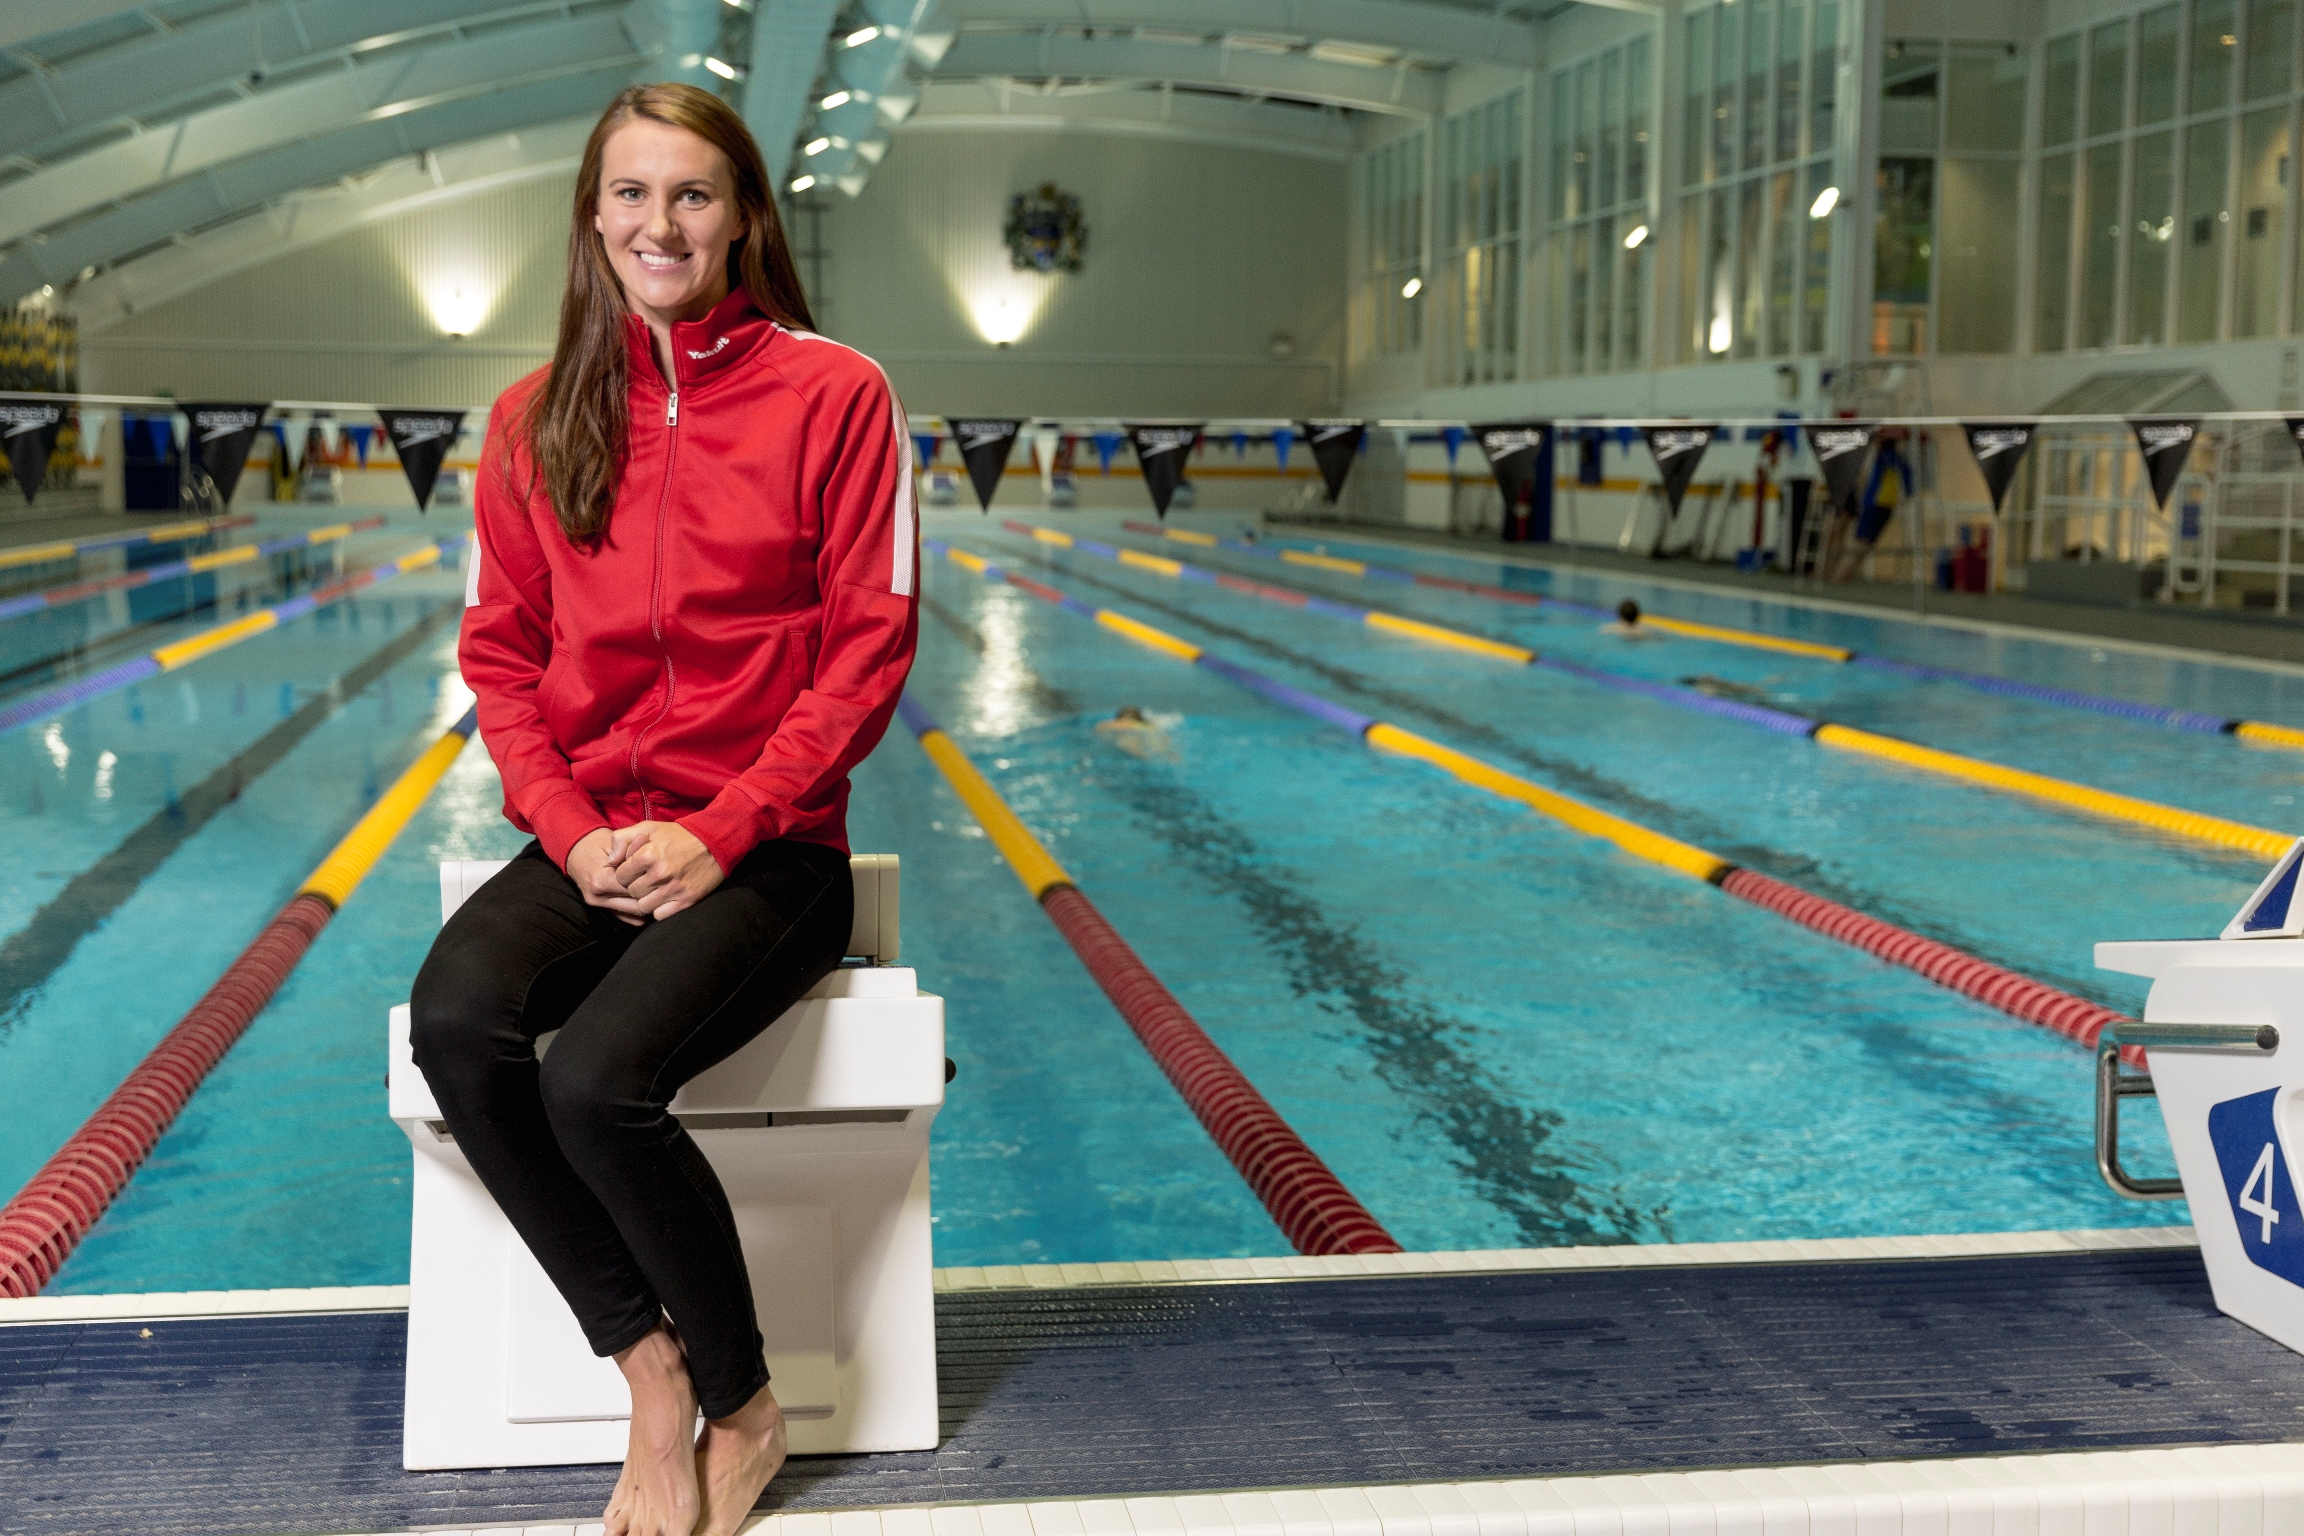 Olympic silver medallist Jazz Carlin is encouraging more people to take up swimming